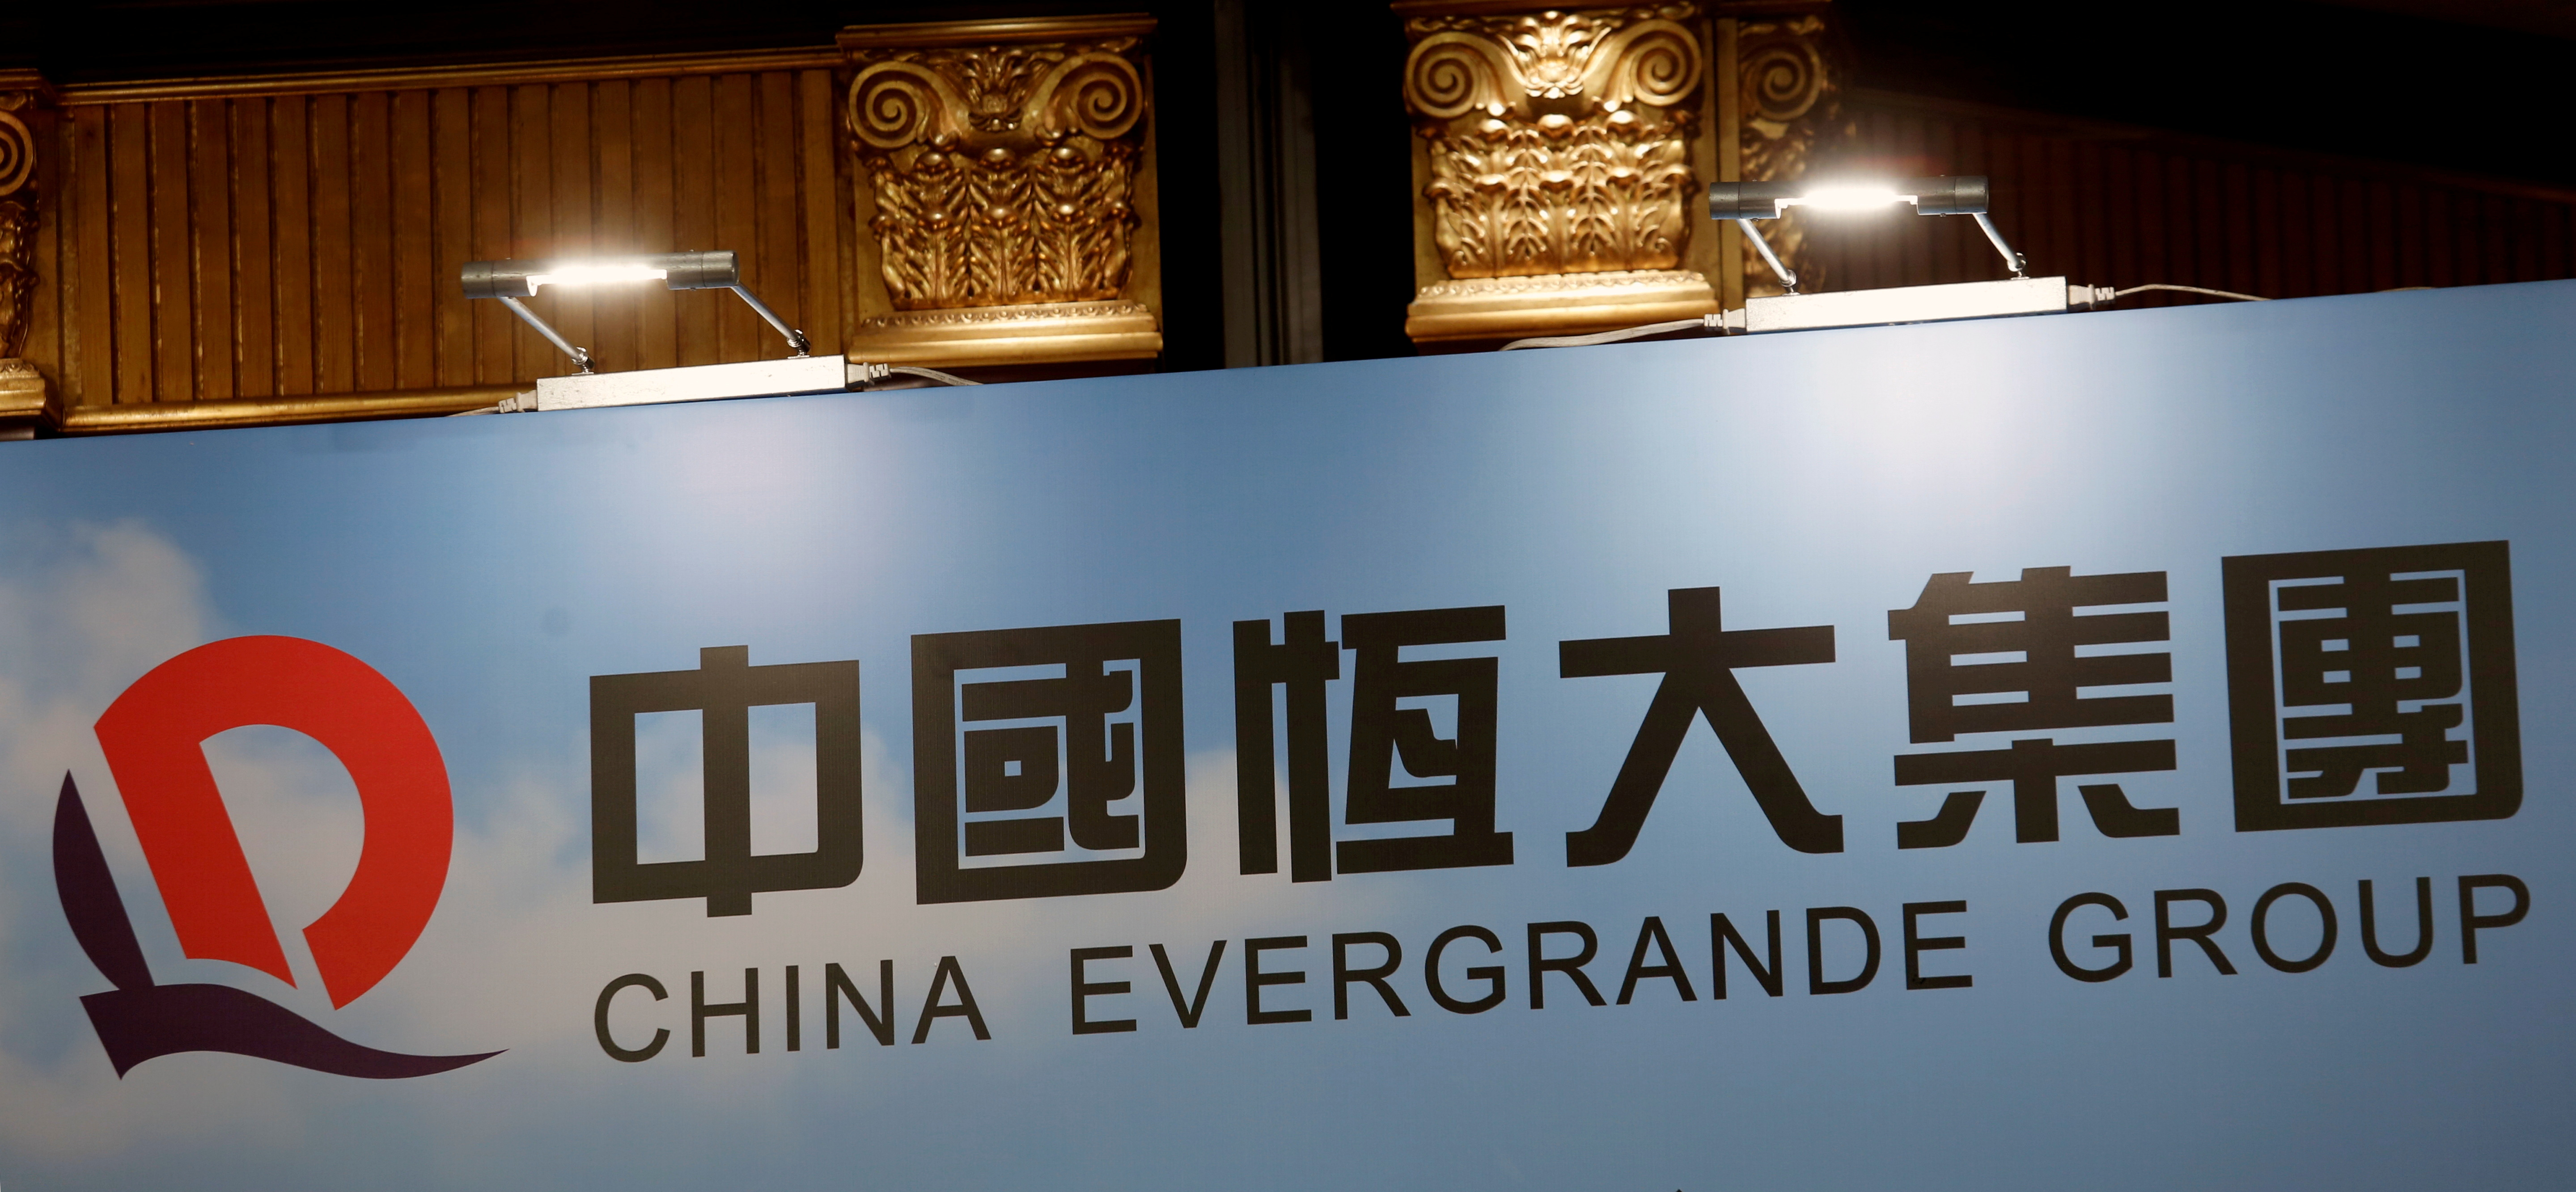 A logo of China Evergrande Group is displayed at a news conference on the property developer's annual results in Hong Kong, China March 28, 2017. REUTERS/Bobby Yip